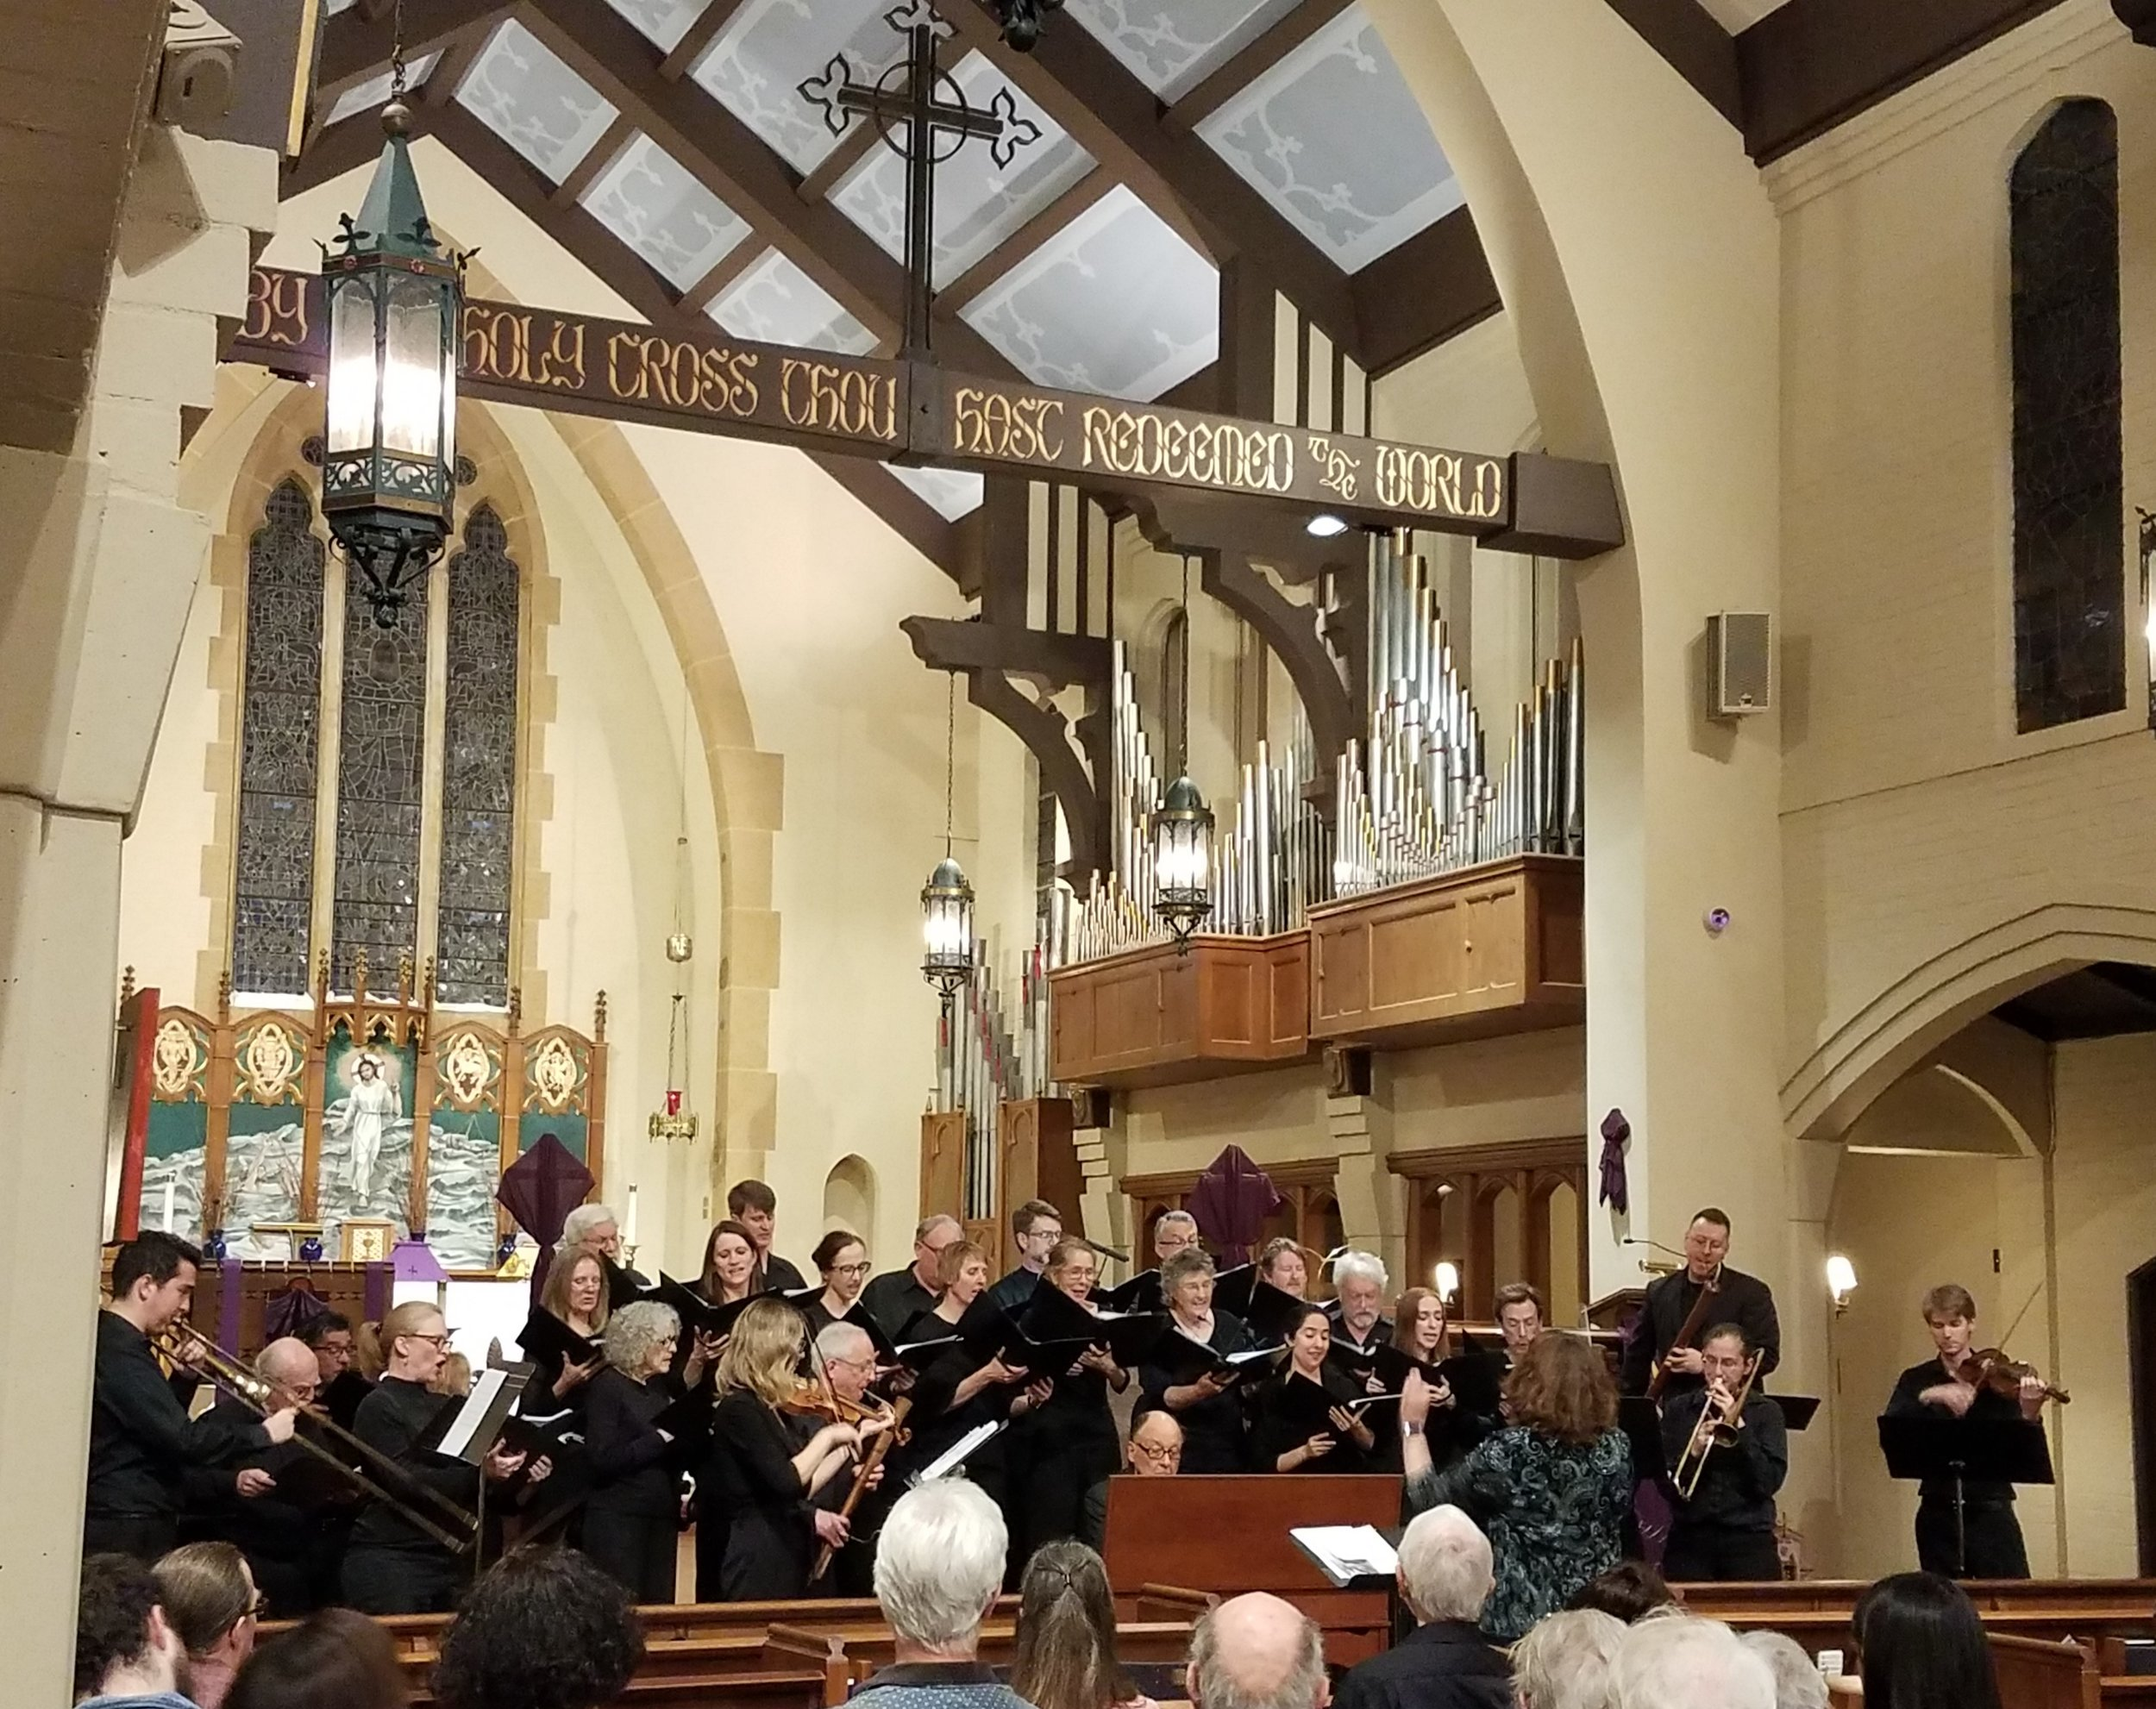 Jouyssance and Commercium Musicum performing at St. Cross Hermosa Beach on March 30, 2019.